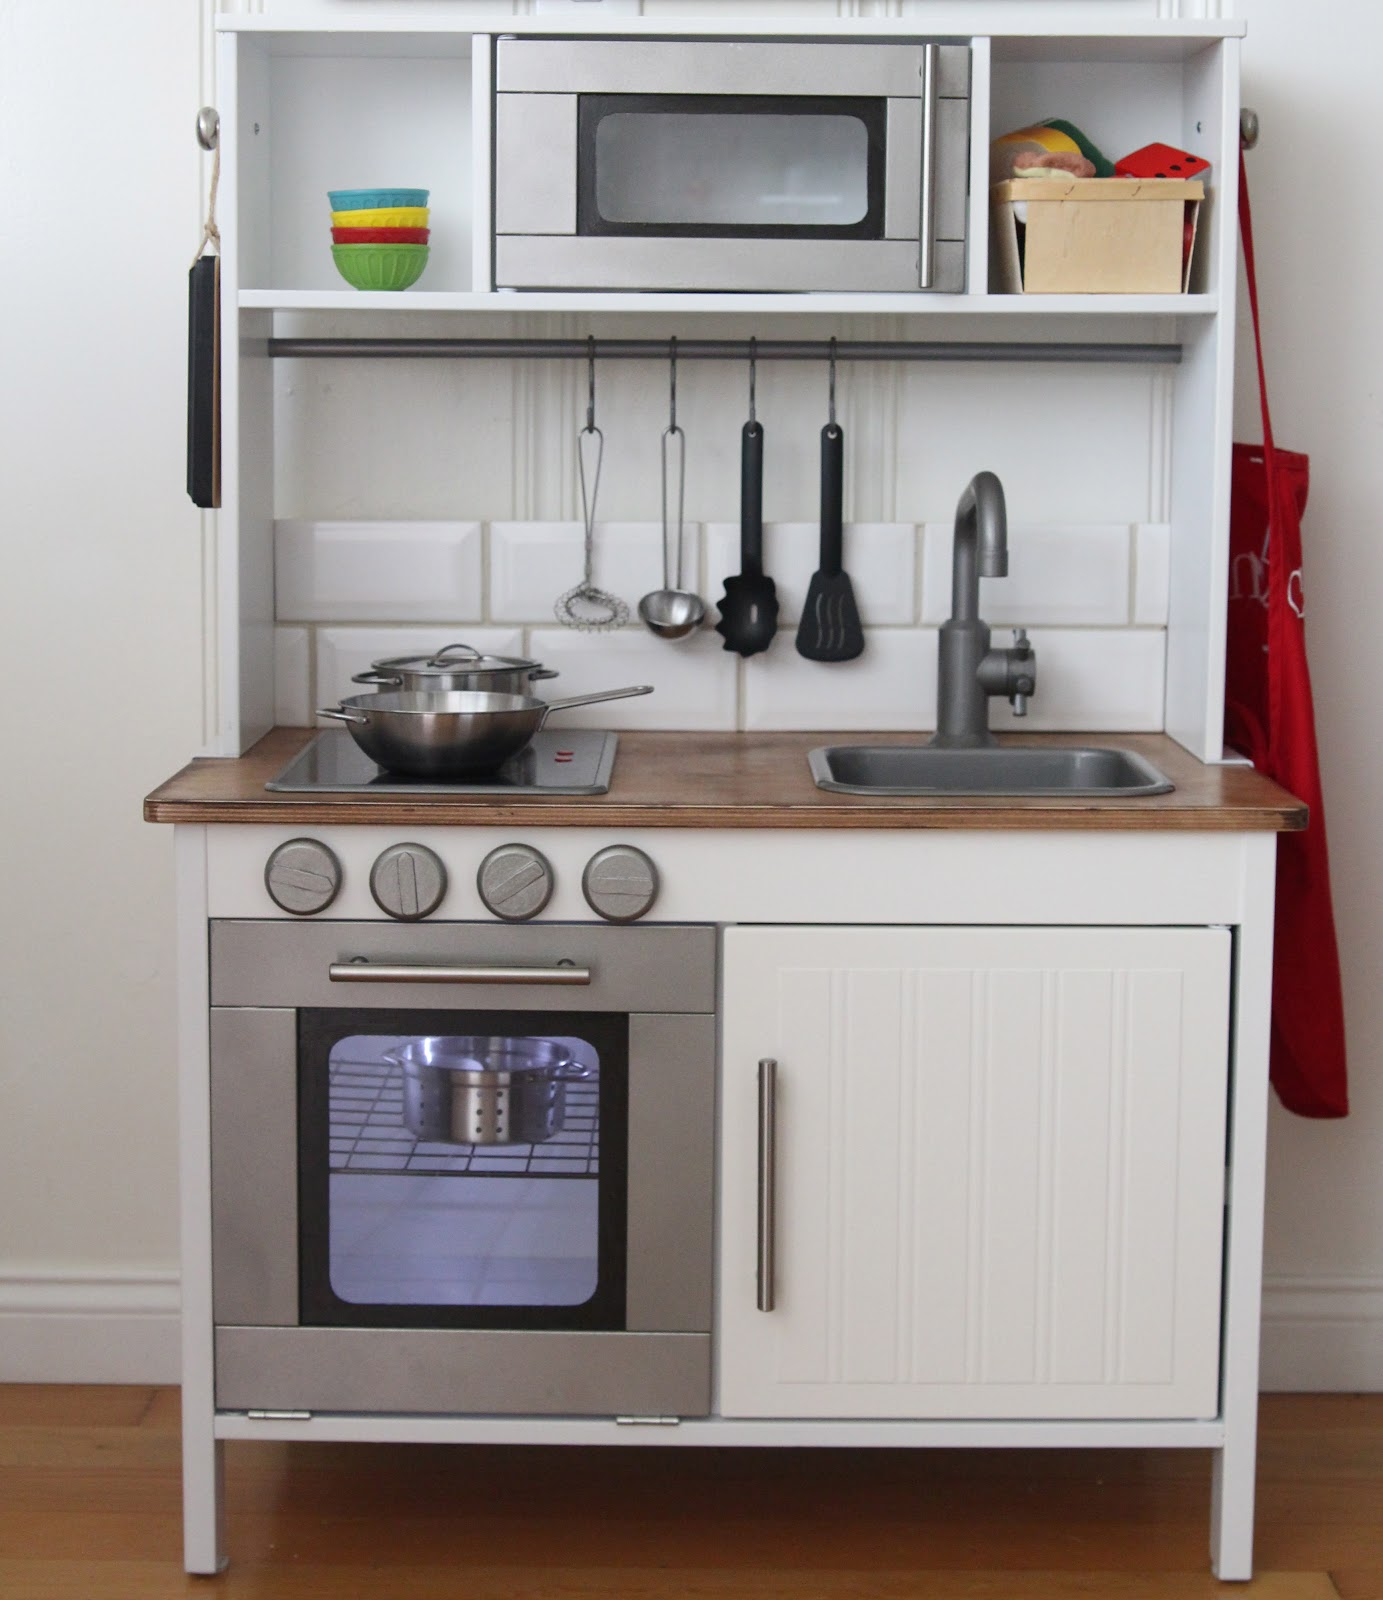 Ikea Hidden Kitchen Appliances